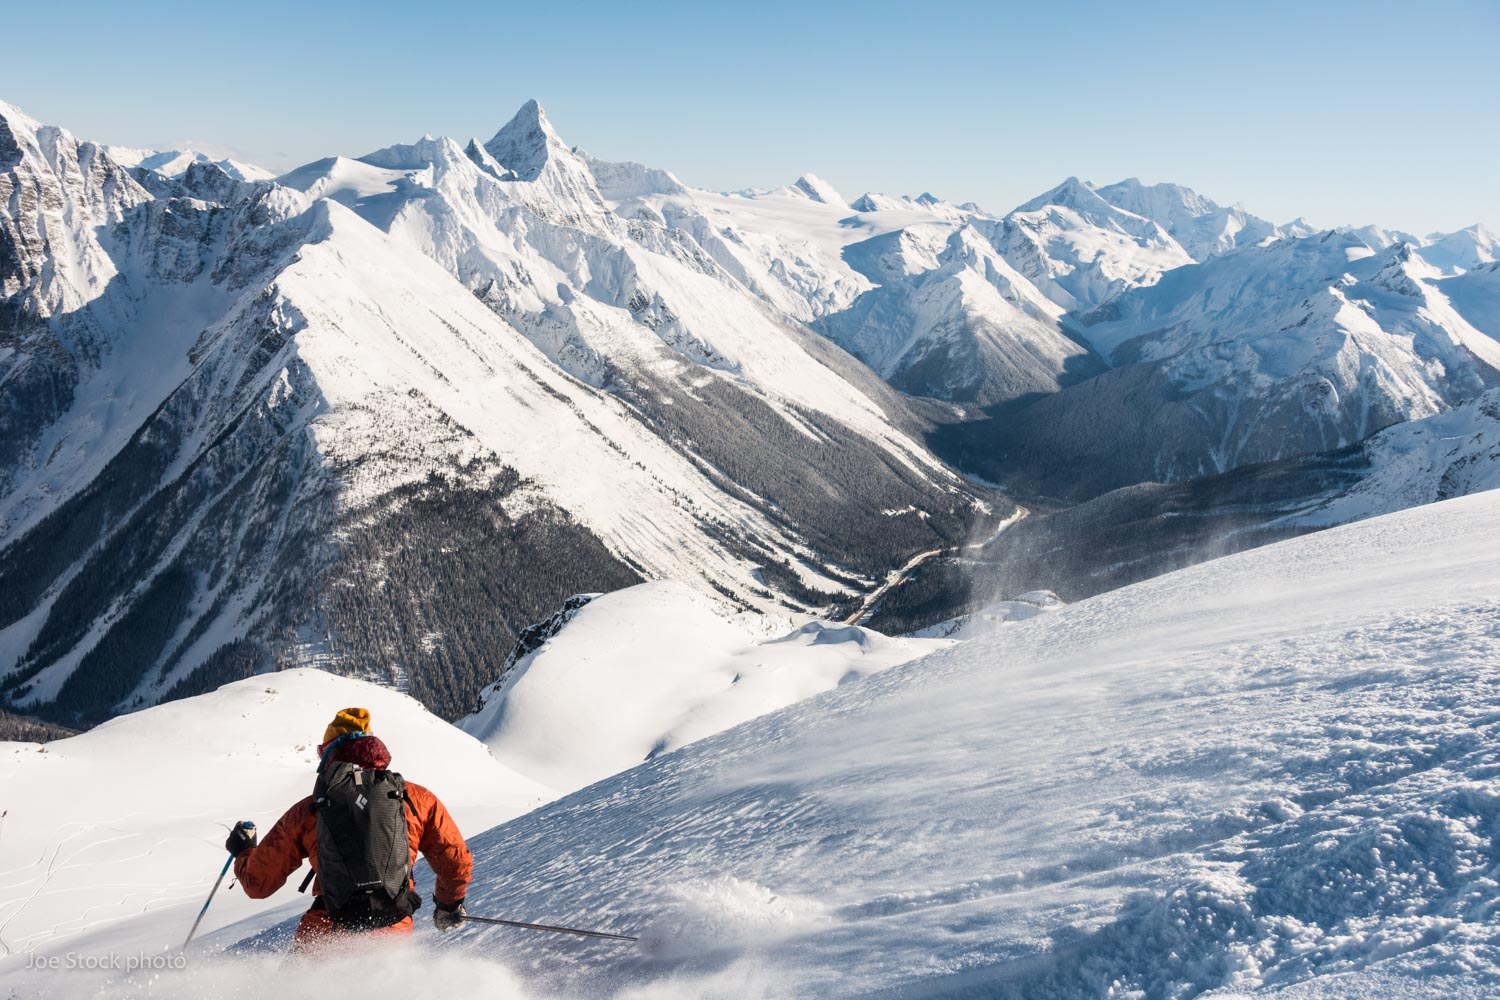 Simon Meis at Roger's Pass. Cathy and I spent February based in Revelstoke. I worked a bit but mostly skied with Cathy. It's the most we've skied together in 10 years. That's good for marriage maintenance.